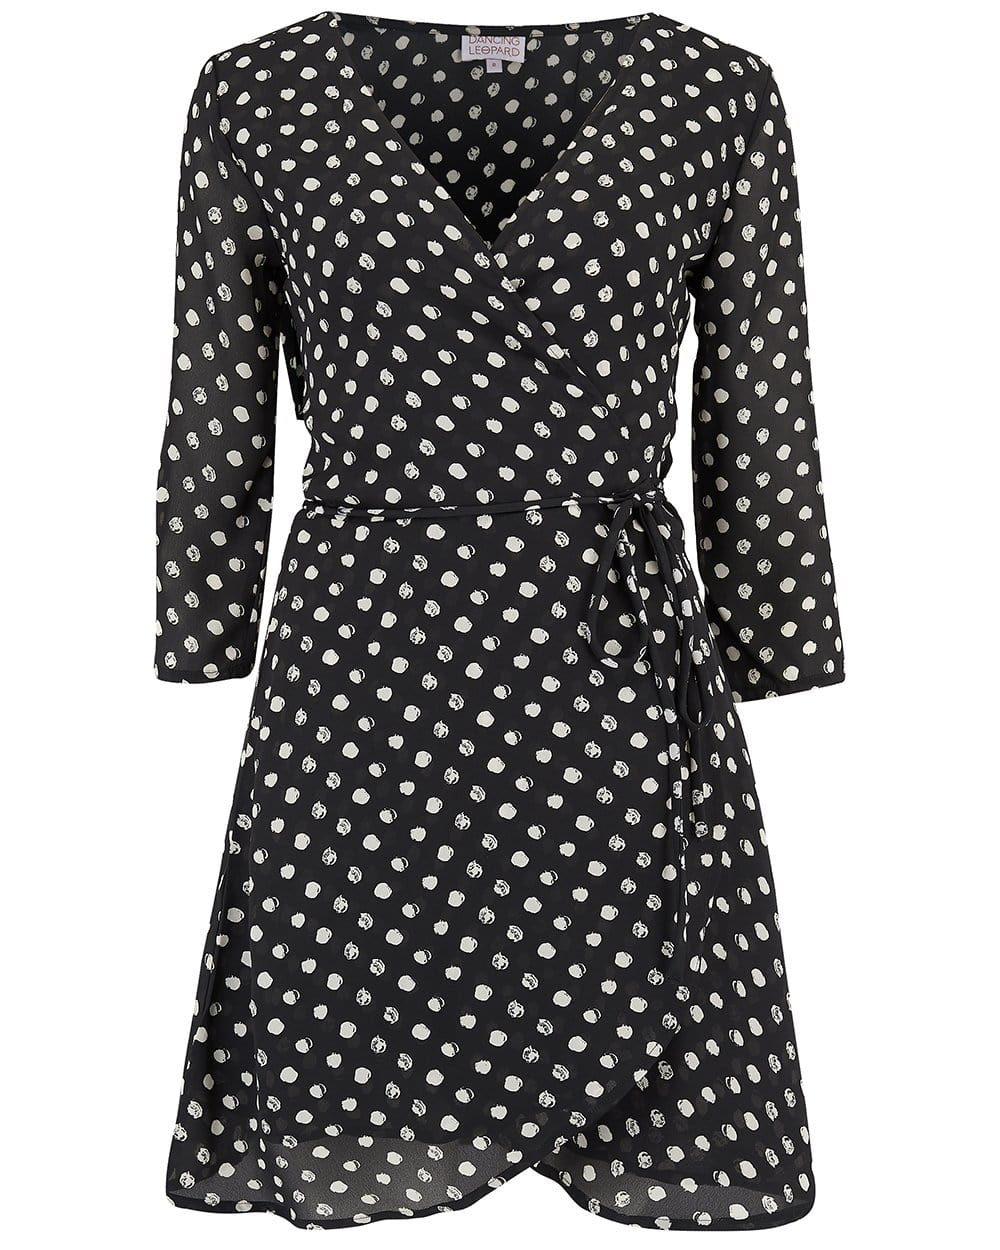 Front view of Dancing Leopard Teagan Mini Dress in Black Dotty Print on white background